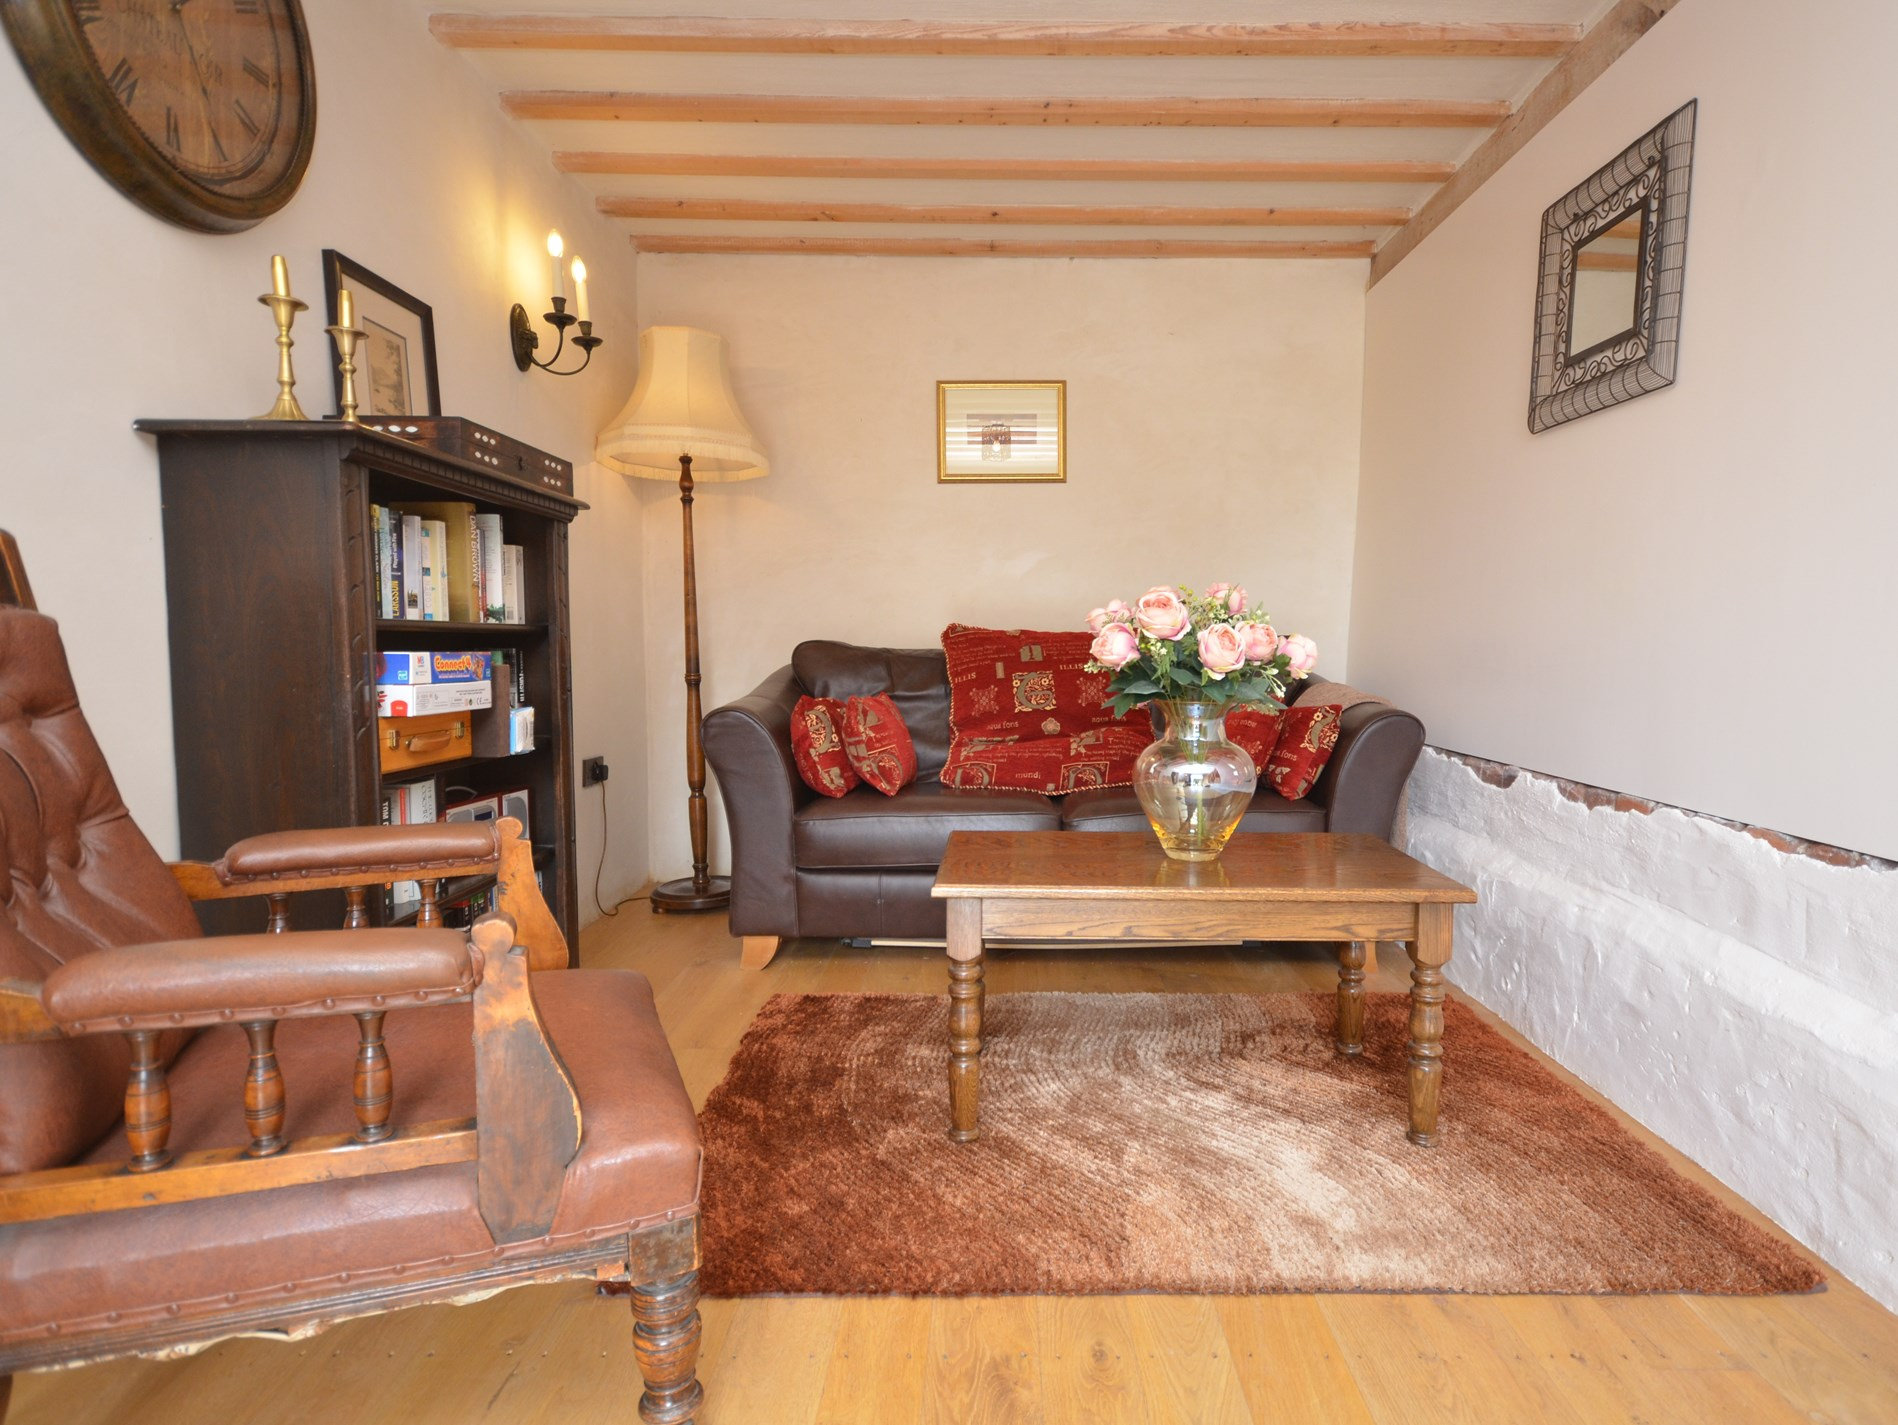 2 Bedroom Cottage in Hepworth, East Anglia